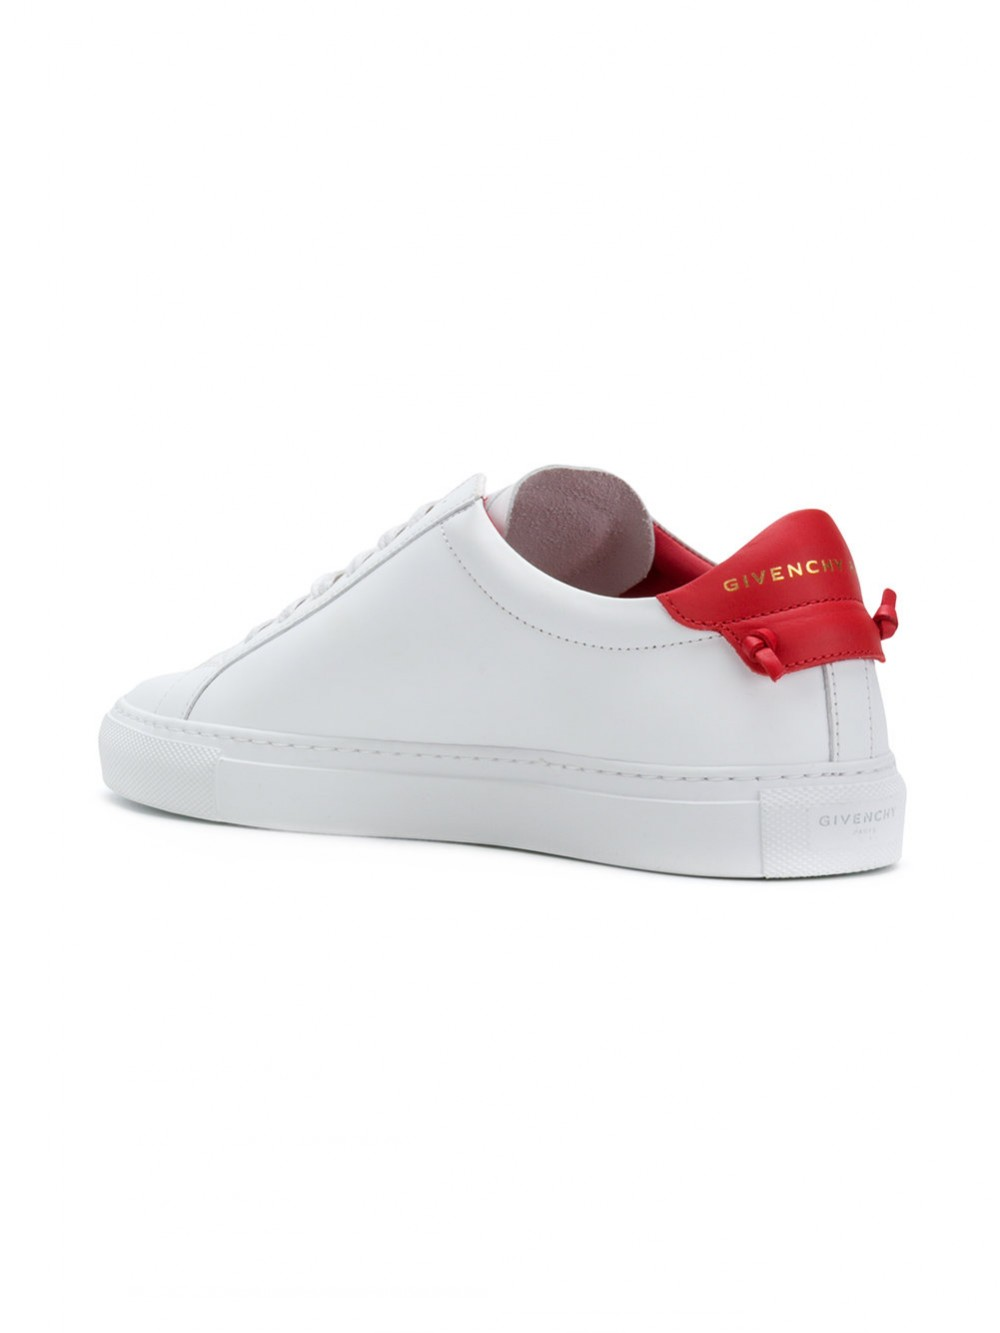 Givenchy Urban Street sneakers BE0003E01W 112